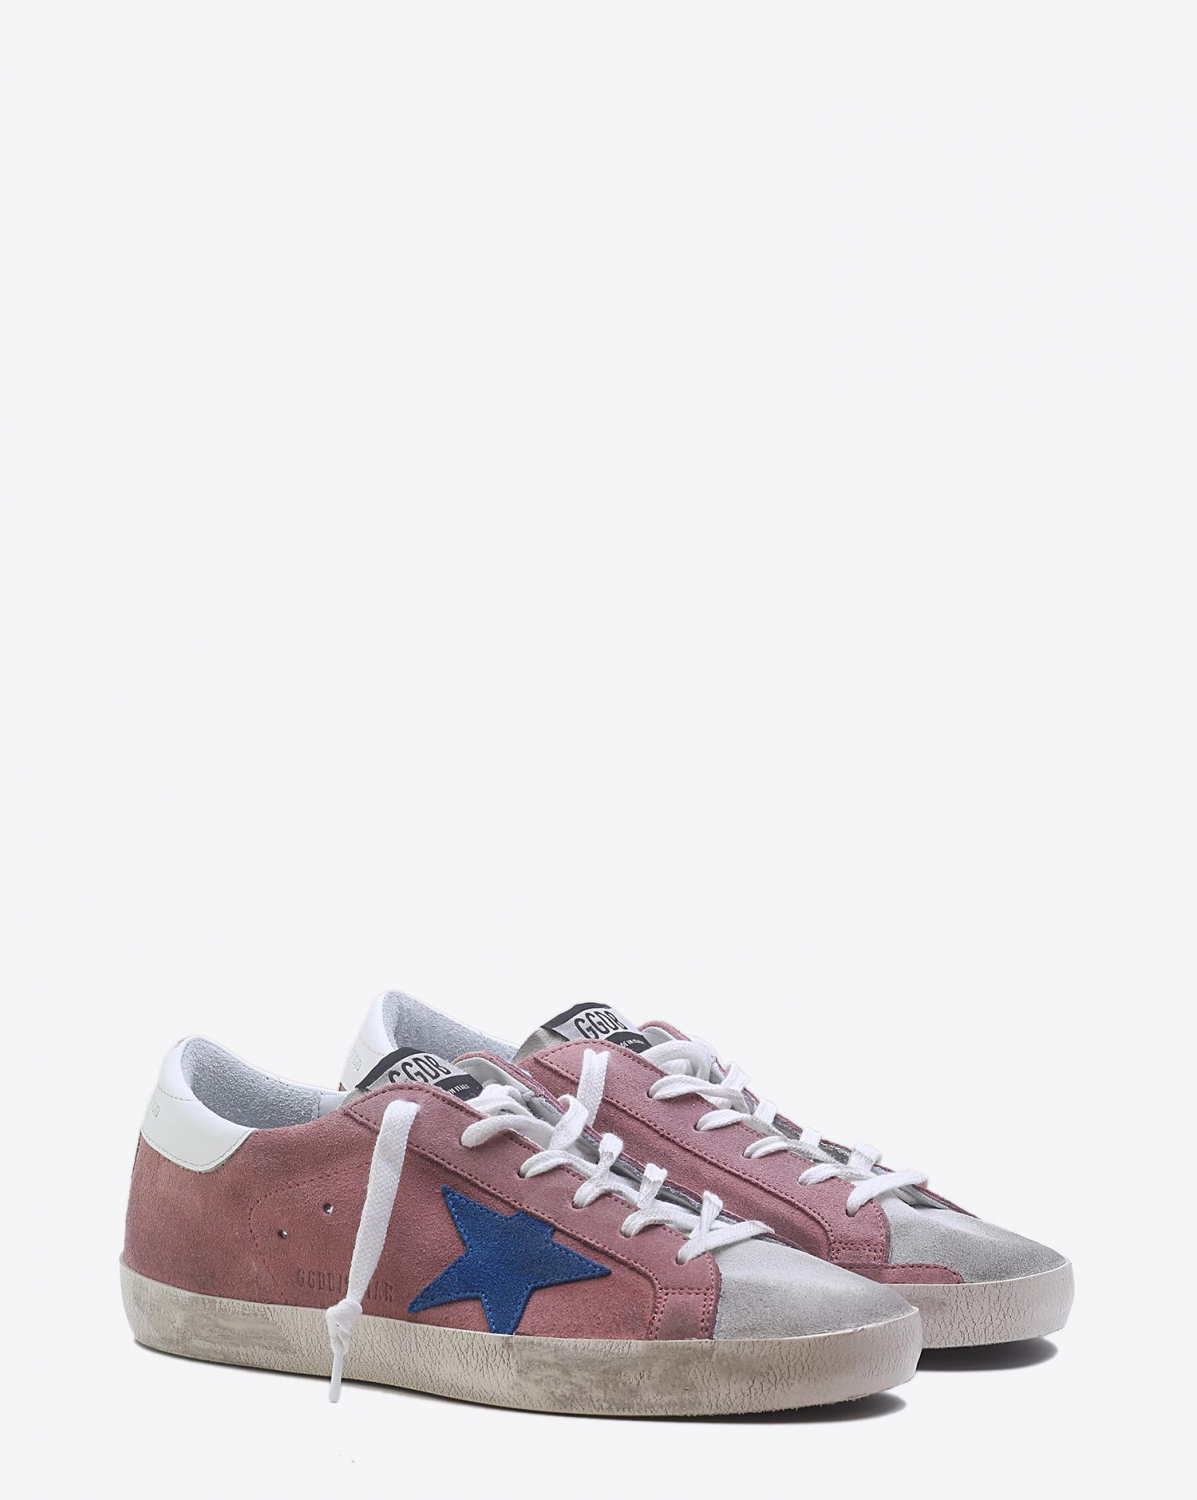 Golden Goose Woman Pré-Collection Sneakers Superstar - Pink White Blue Star